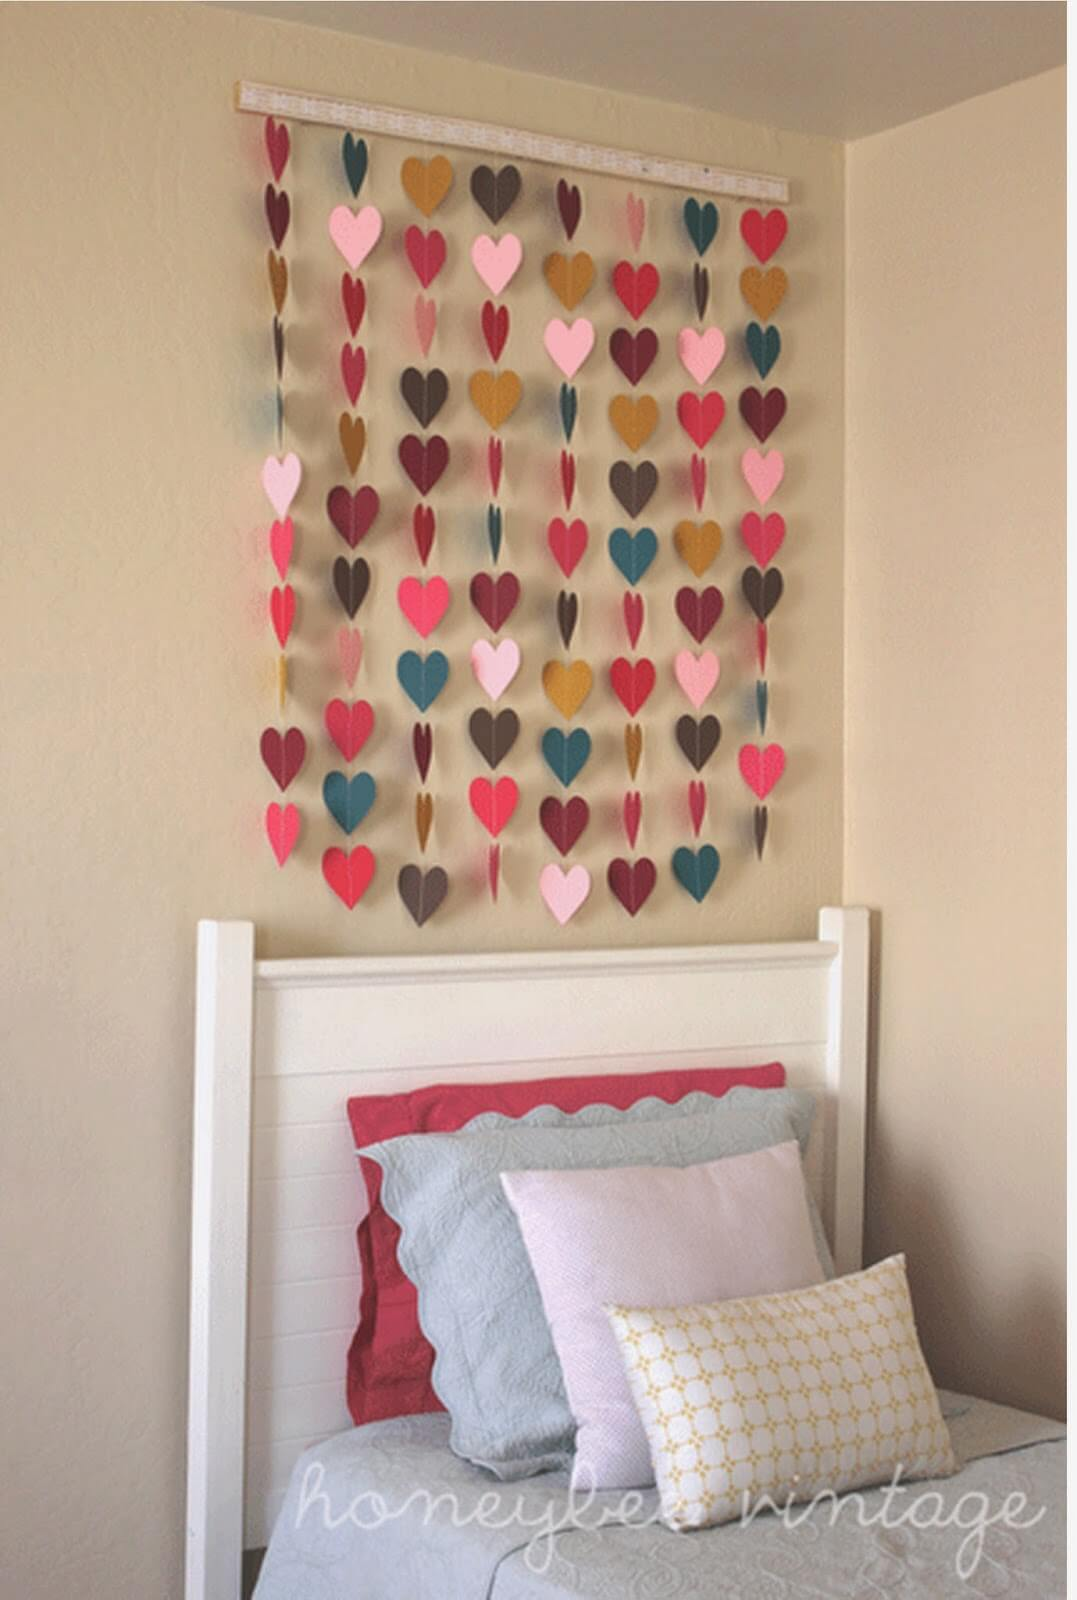 DIY Heart Cutout Wall Hanging